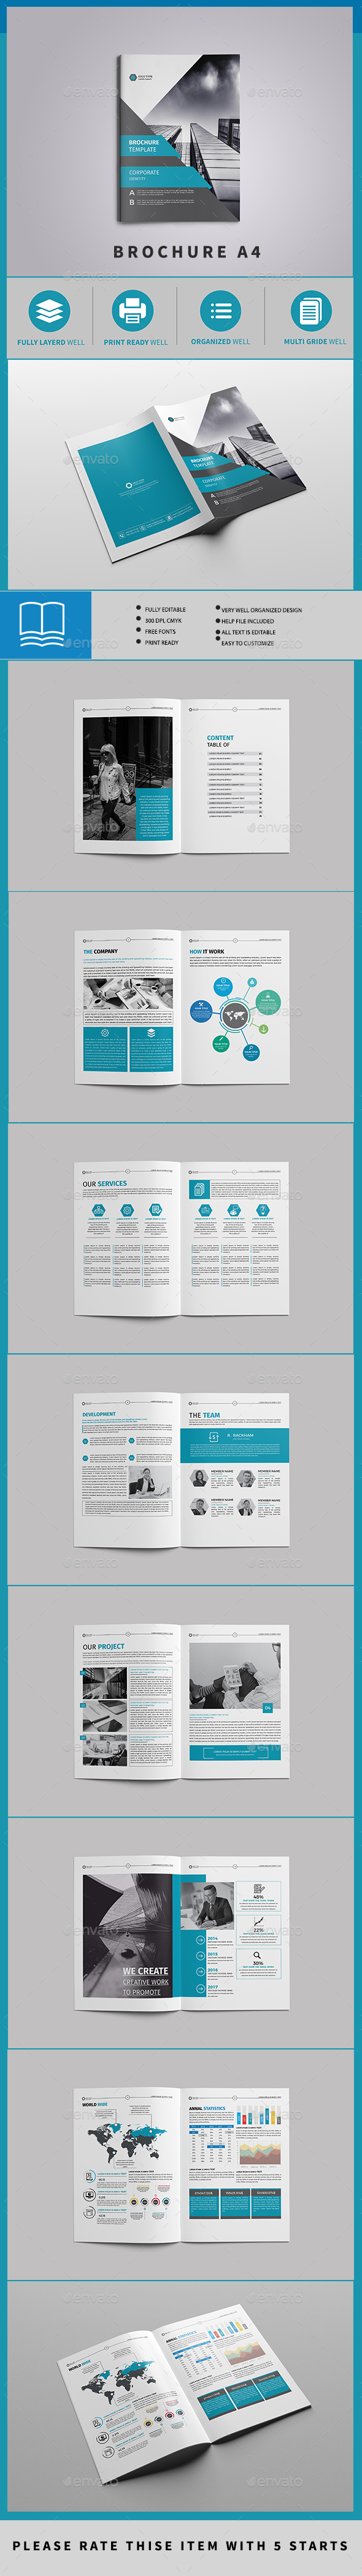 Corporate Brochure Template 16 Page - Brochures Print Templates